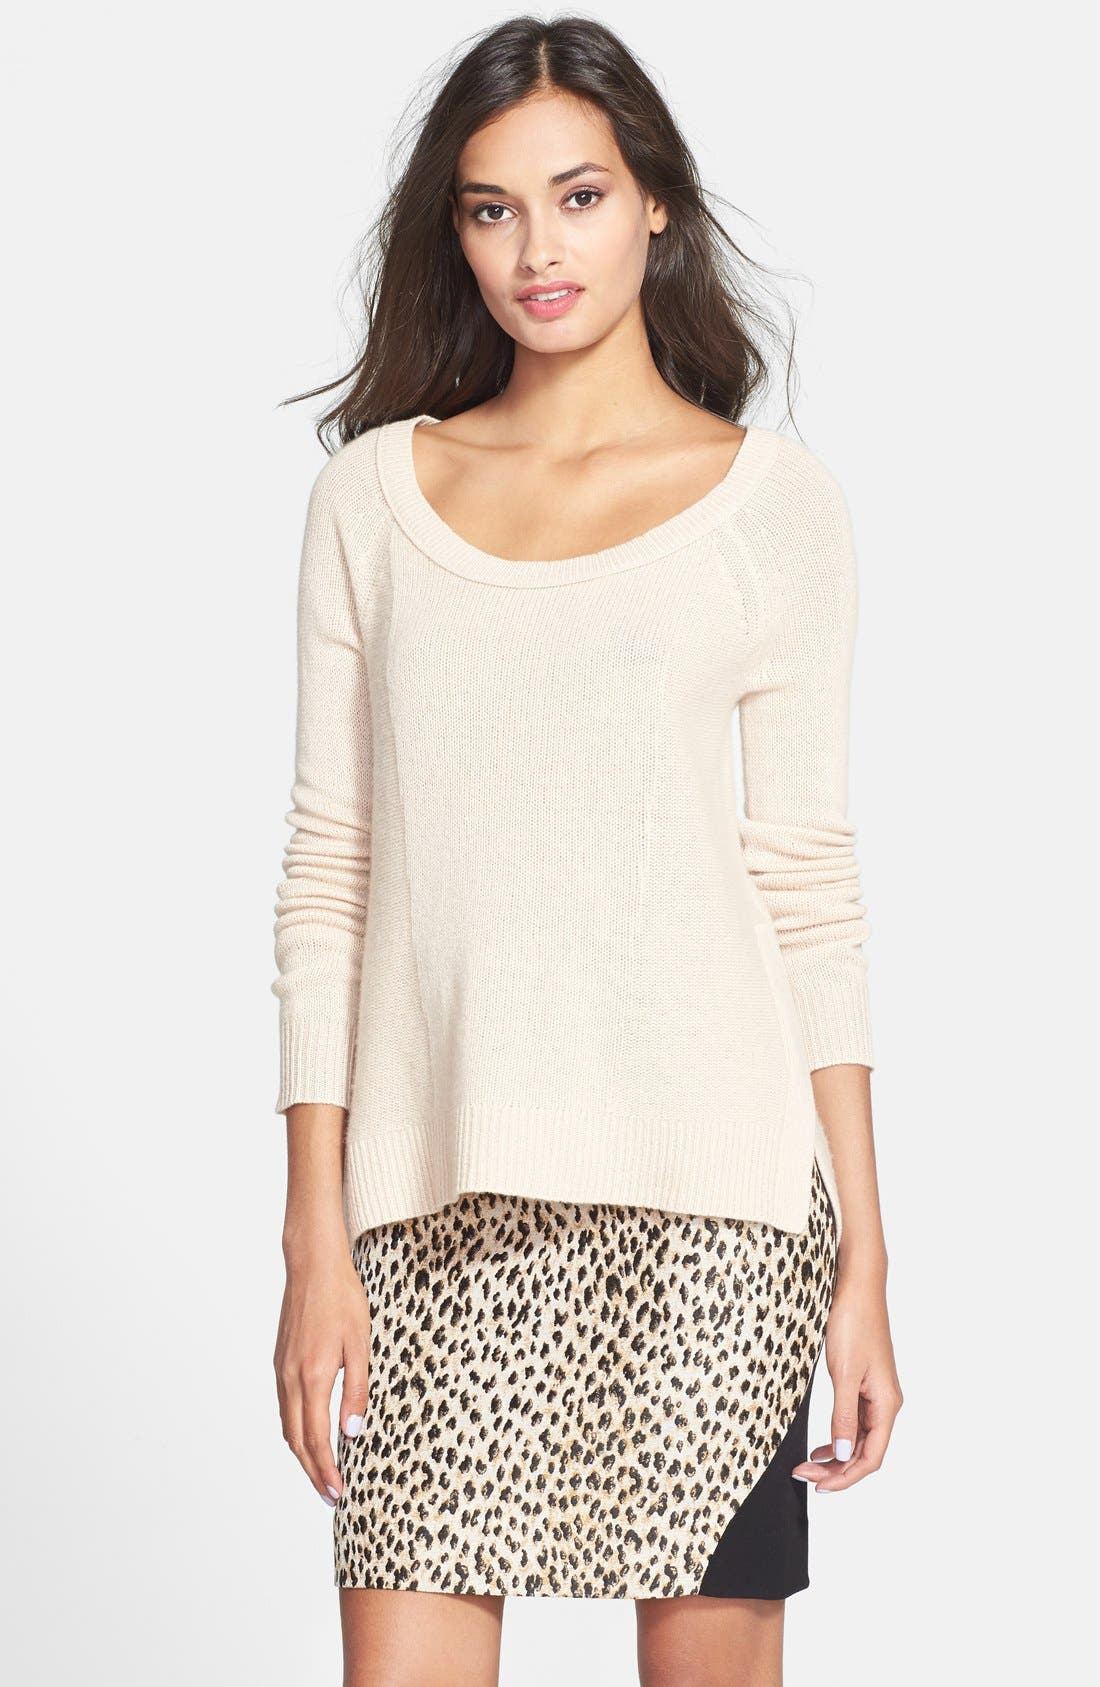 Alternate Image 1 Selected - Diane von Furstenberg 'Ivory' High/Low Cashmere Sweater